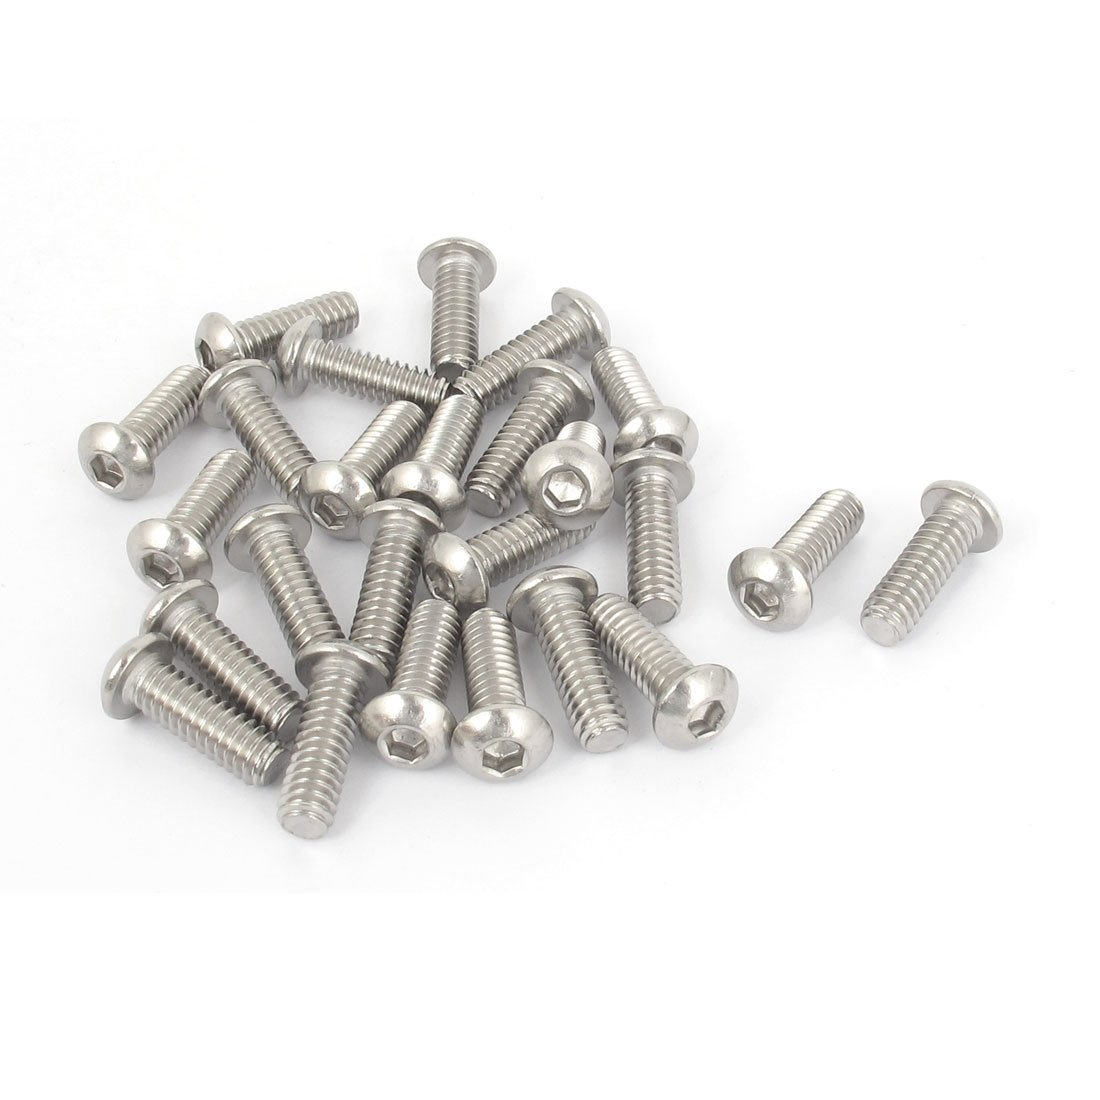 LIXF HOT 1/4 Inch-20x3/4 Inch Hex Socket Button Head Bolts Screws 25pcs 20pcs m3 6 m3 x 6mm aluminum anodized hex socket button head screw